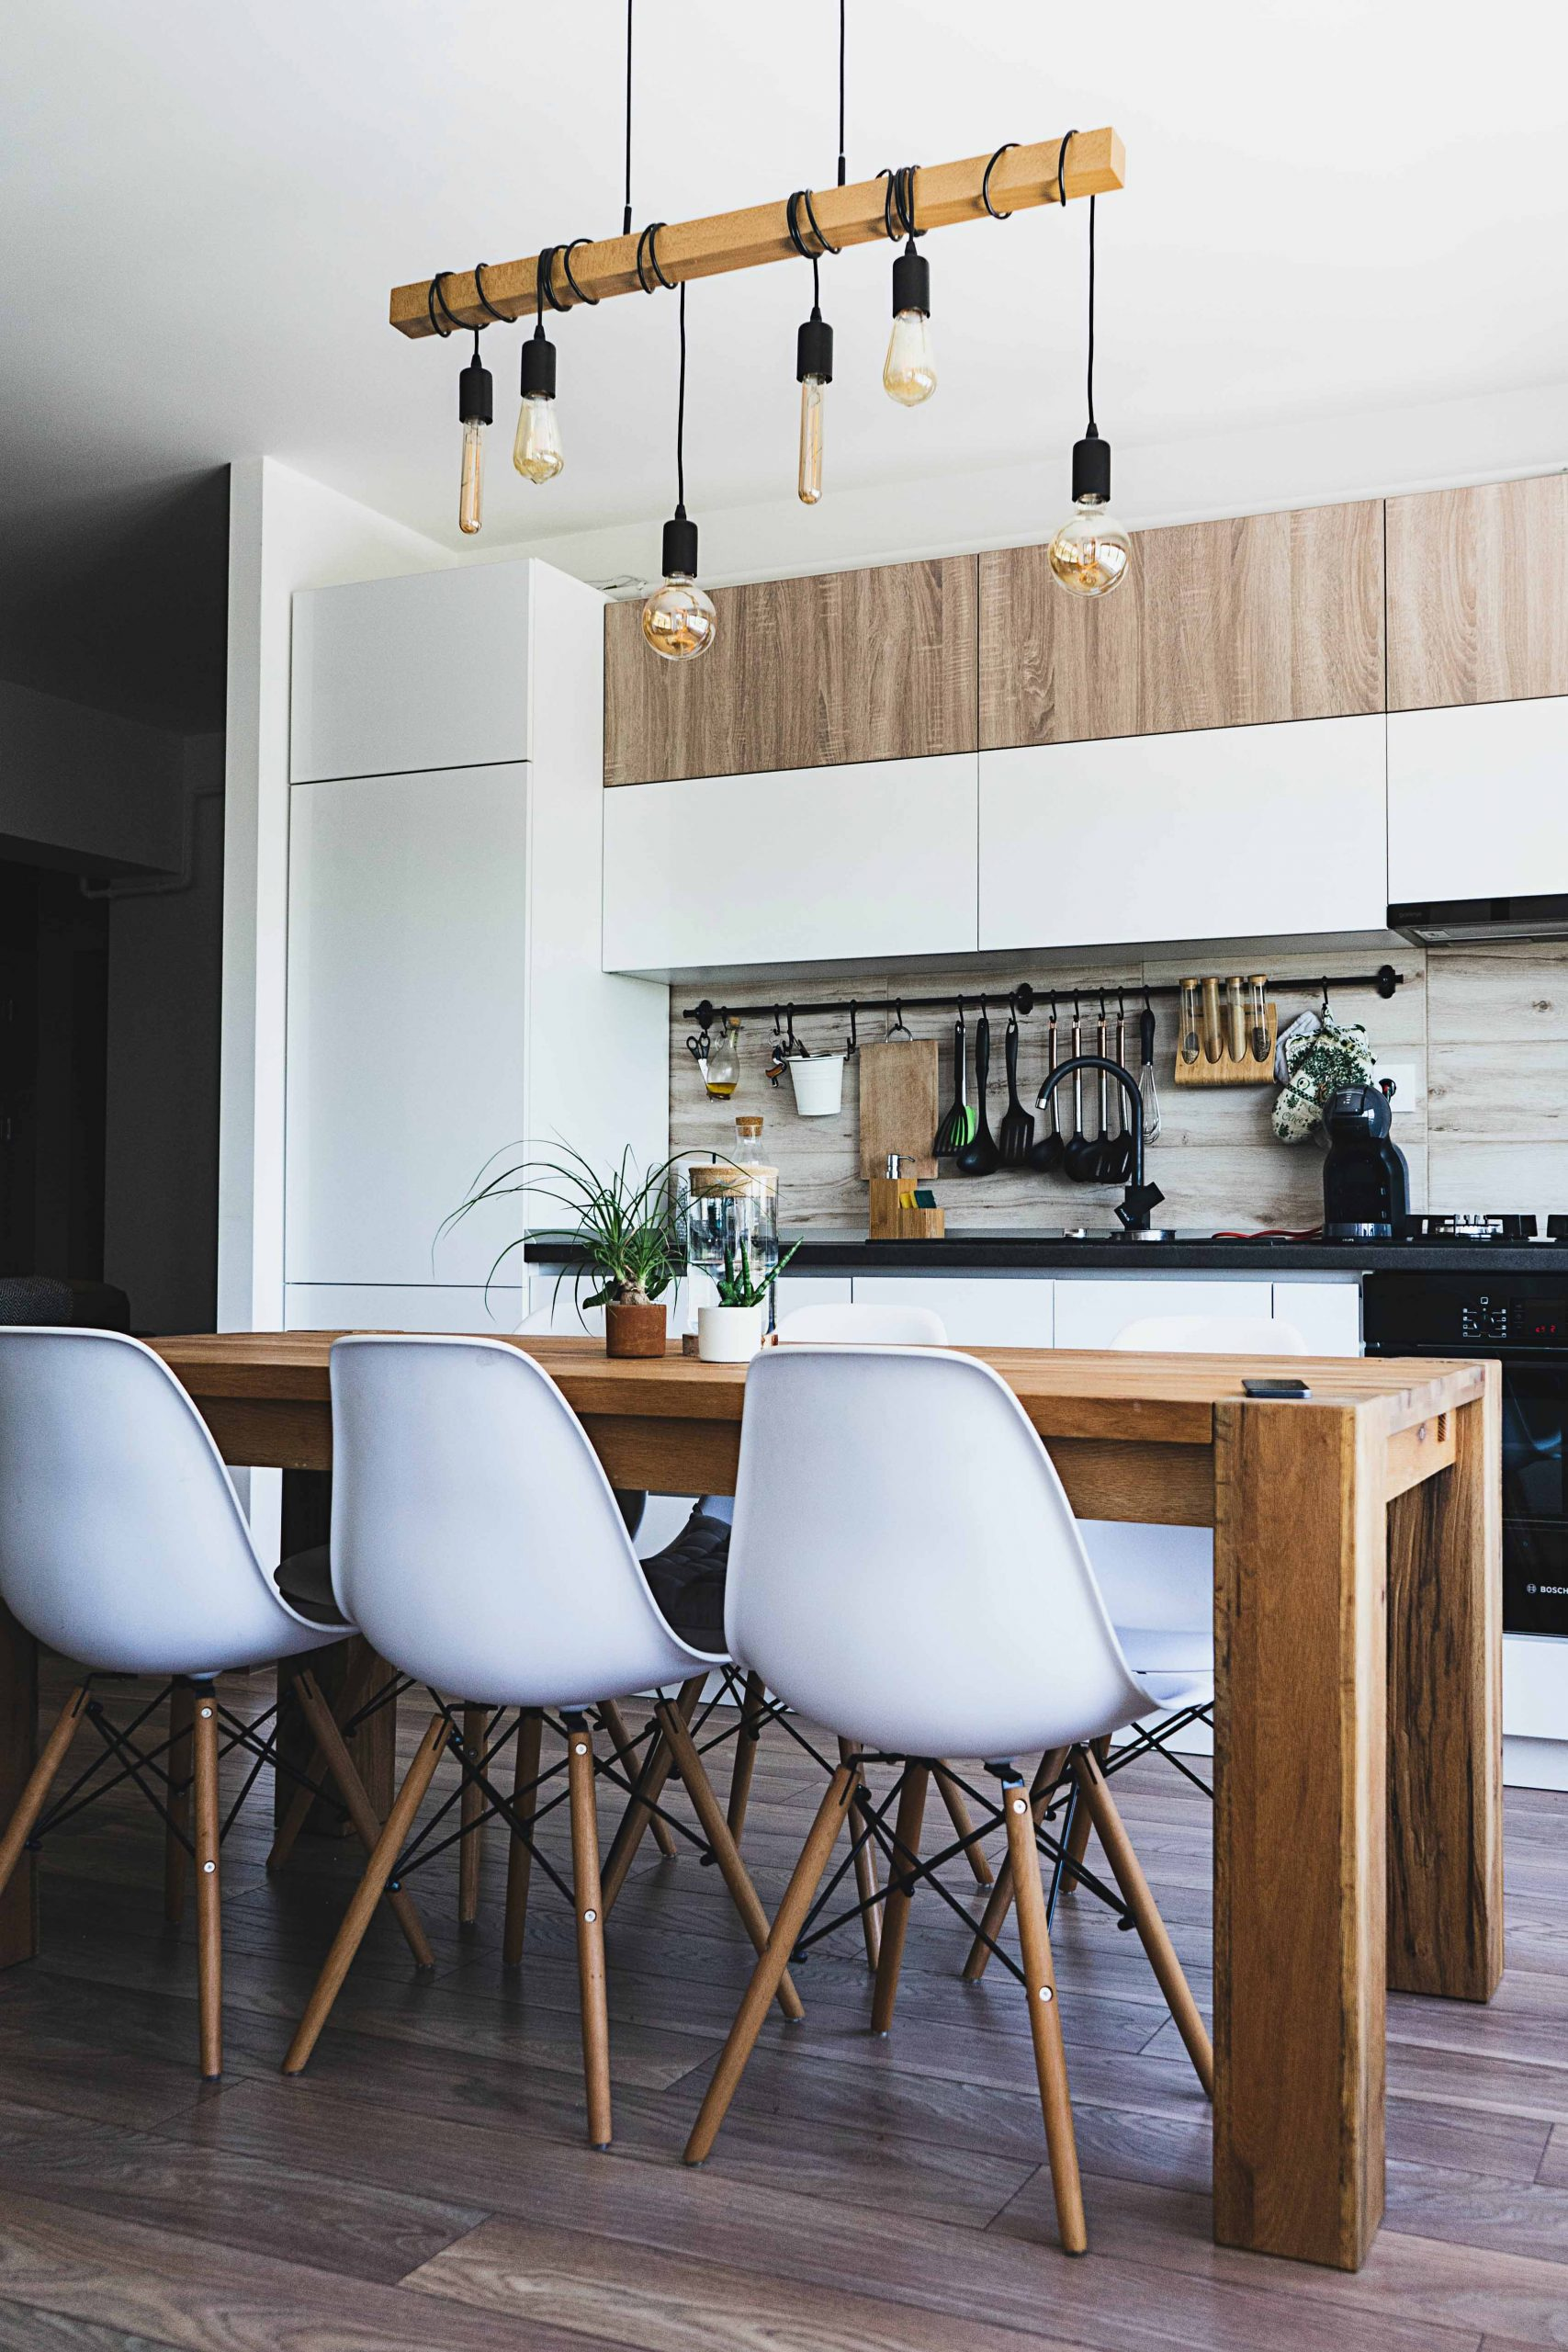 Kitchen design with white cabinets, white Eames chairs, light wooden table, industrial light pendants